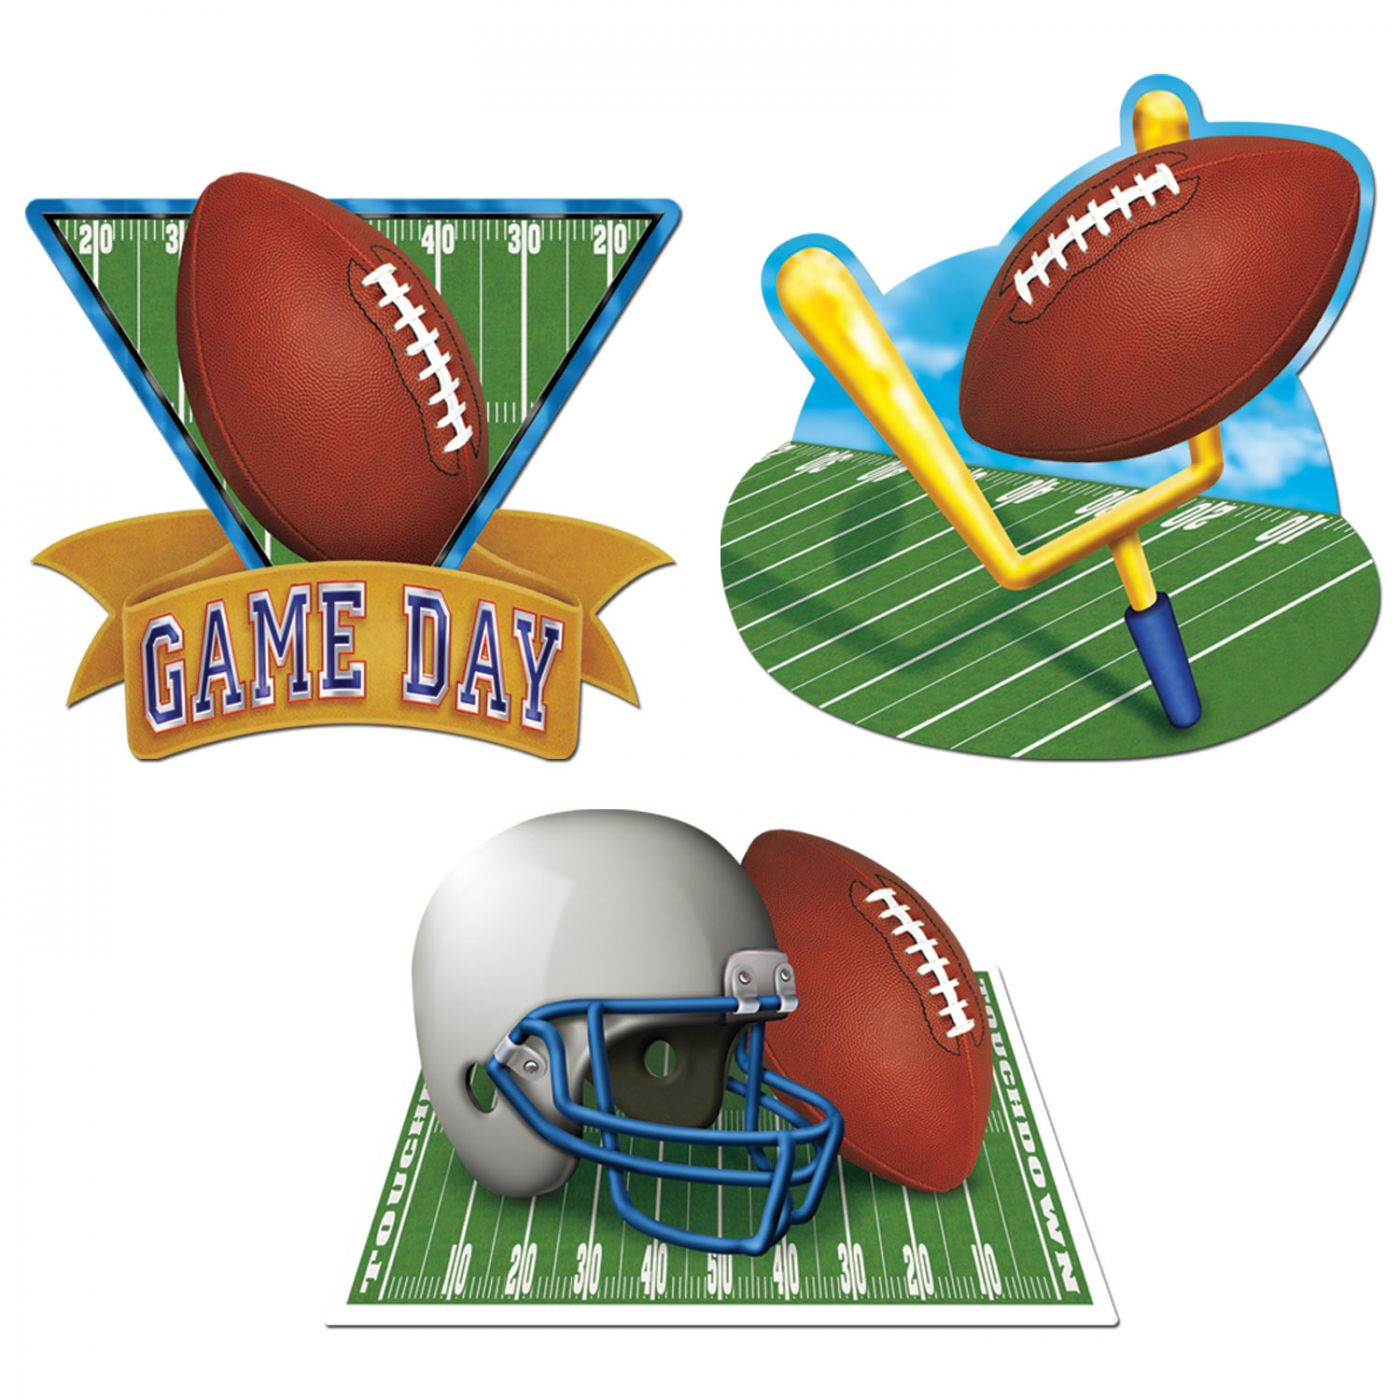 Game Day Football Cutouts image